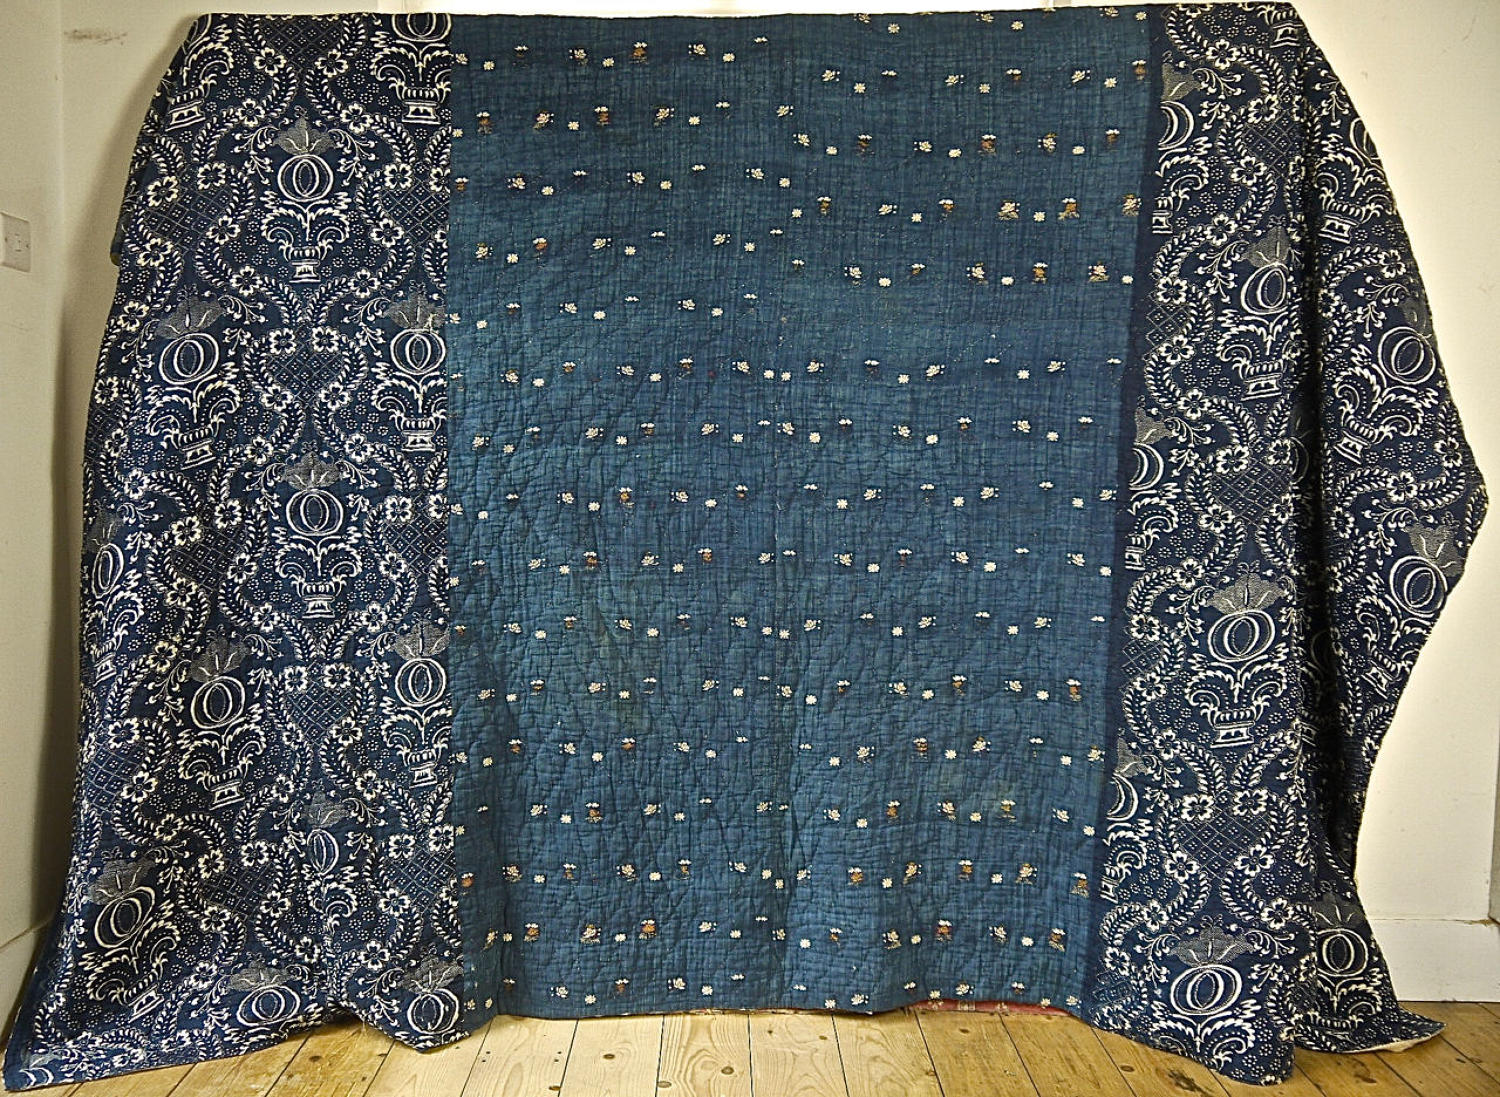 Indigo Embroidered Linen And Block-printedCotton Quilt French 18thC